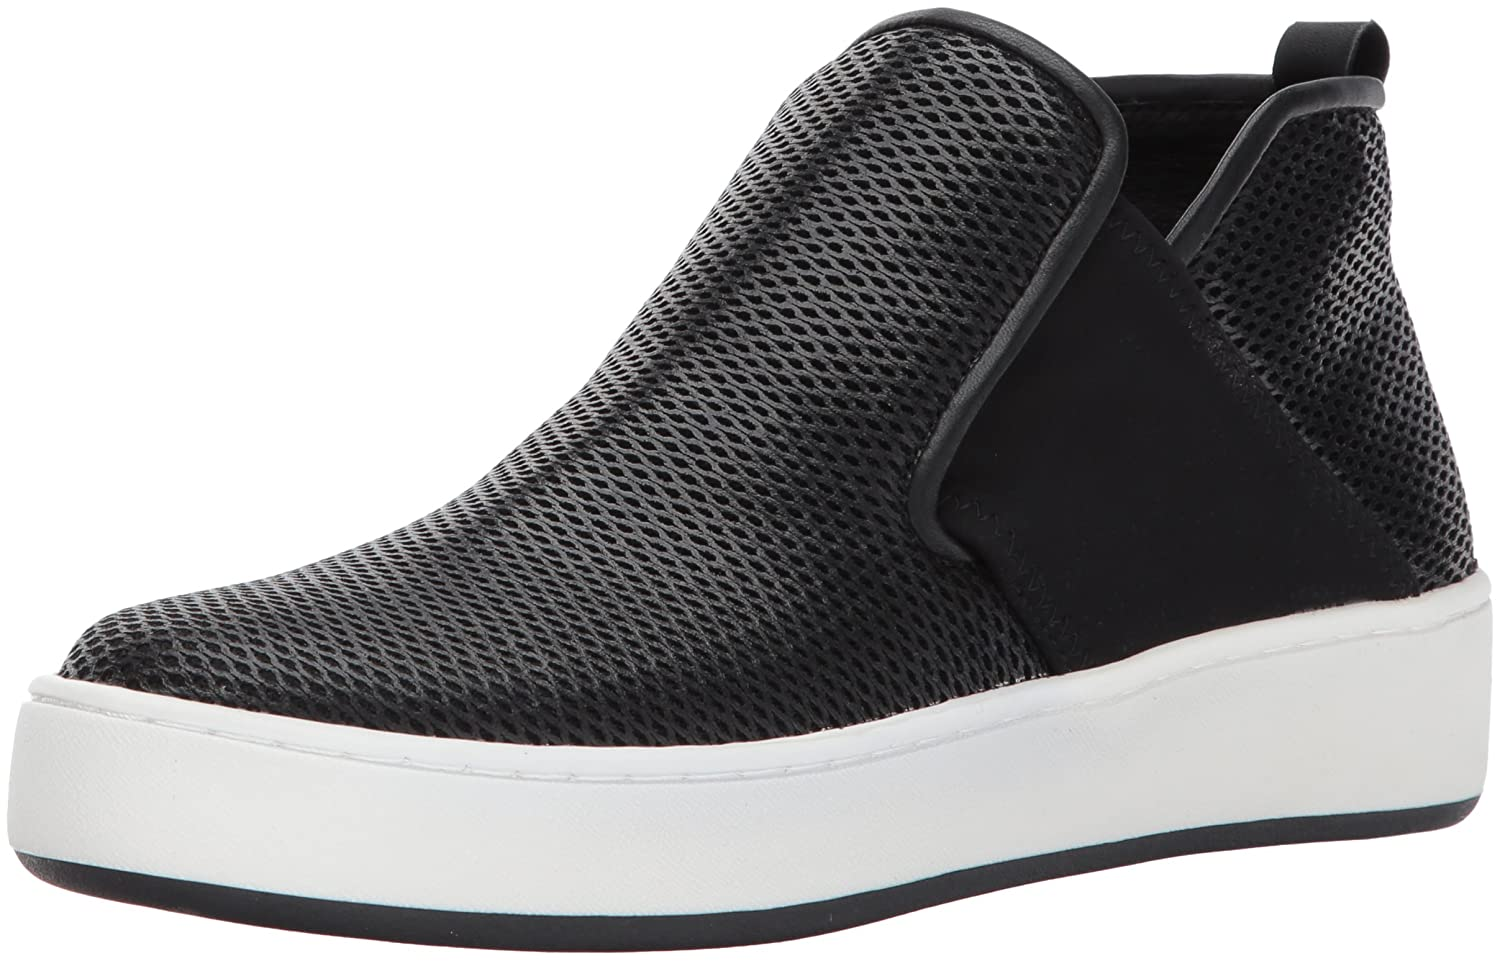 Donald J Pliner Women's Carole Sneaker B06XPPFR39 8.5 B(M) US|Black Perforated